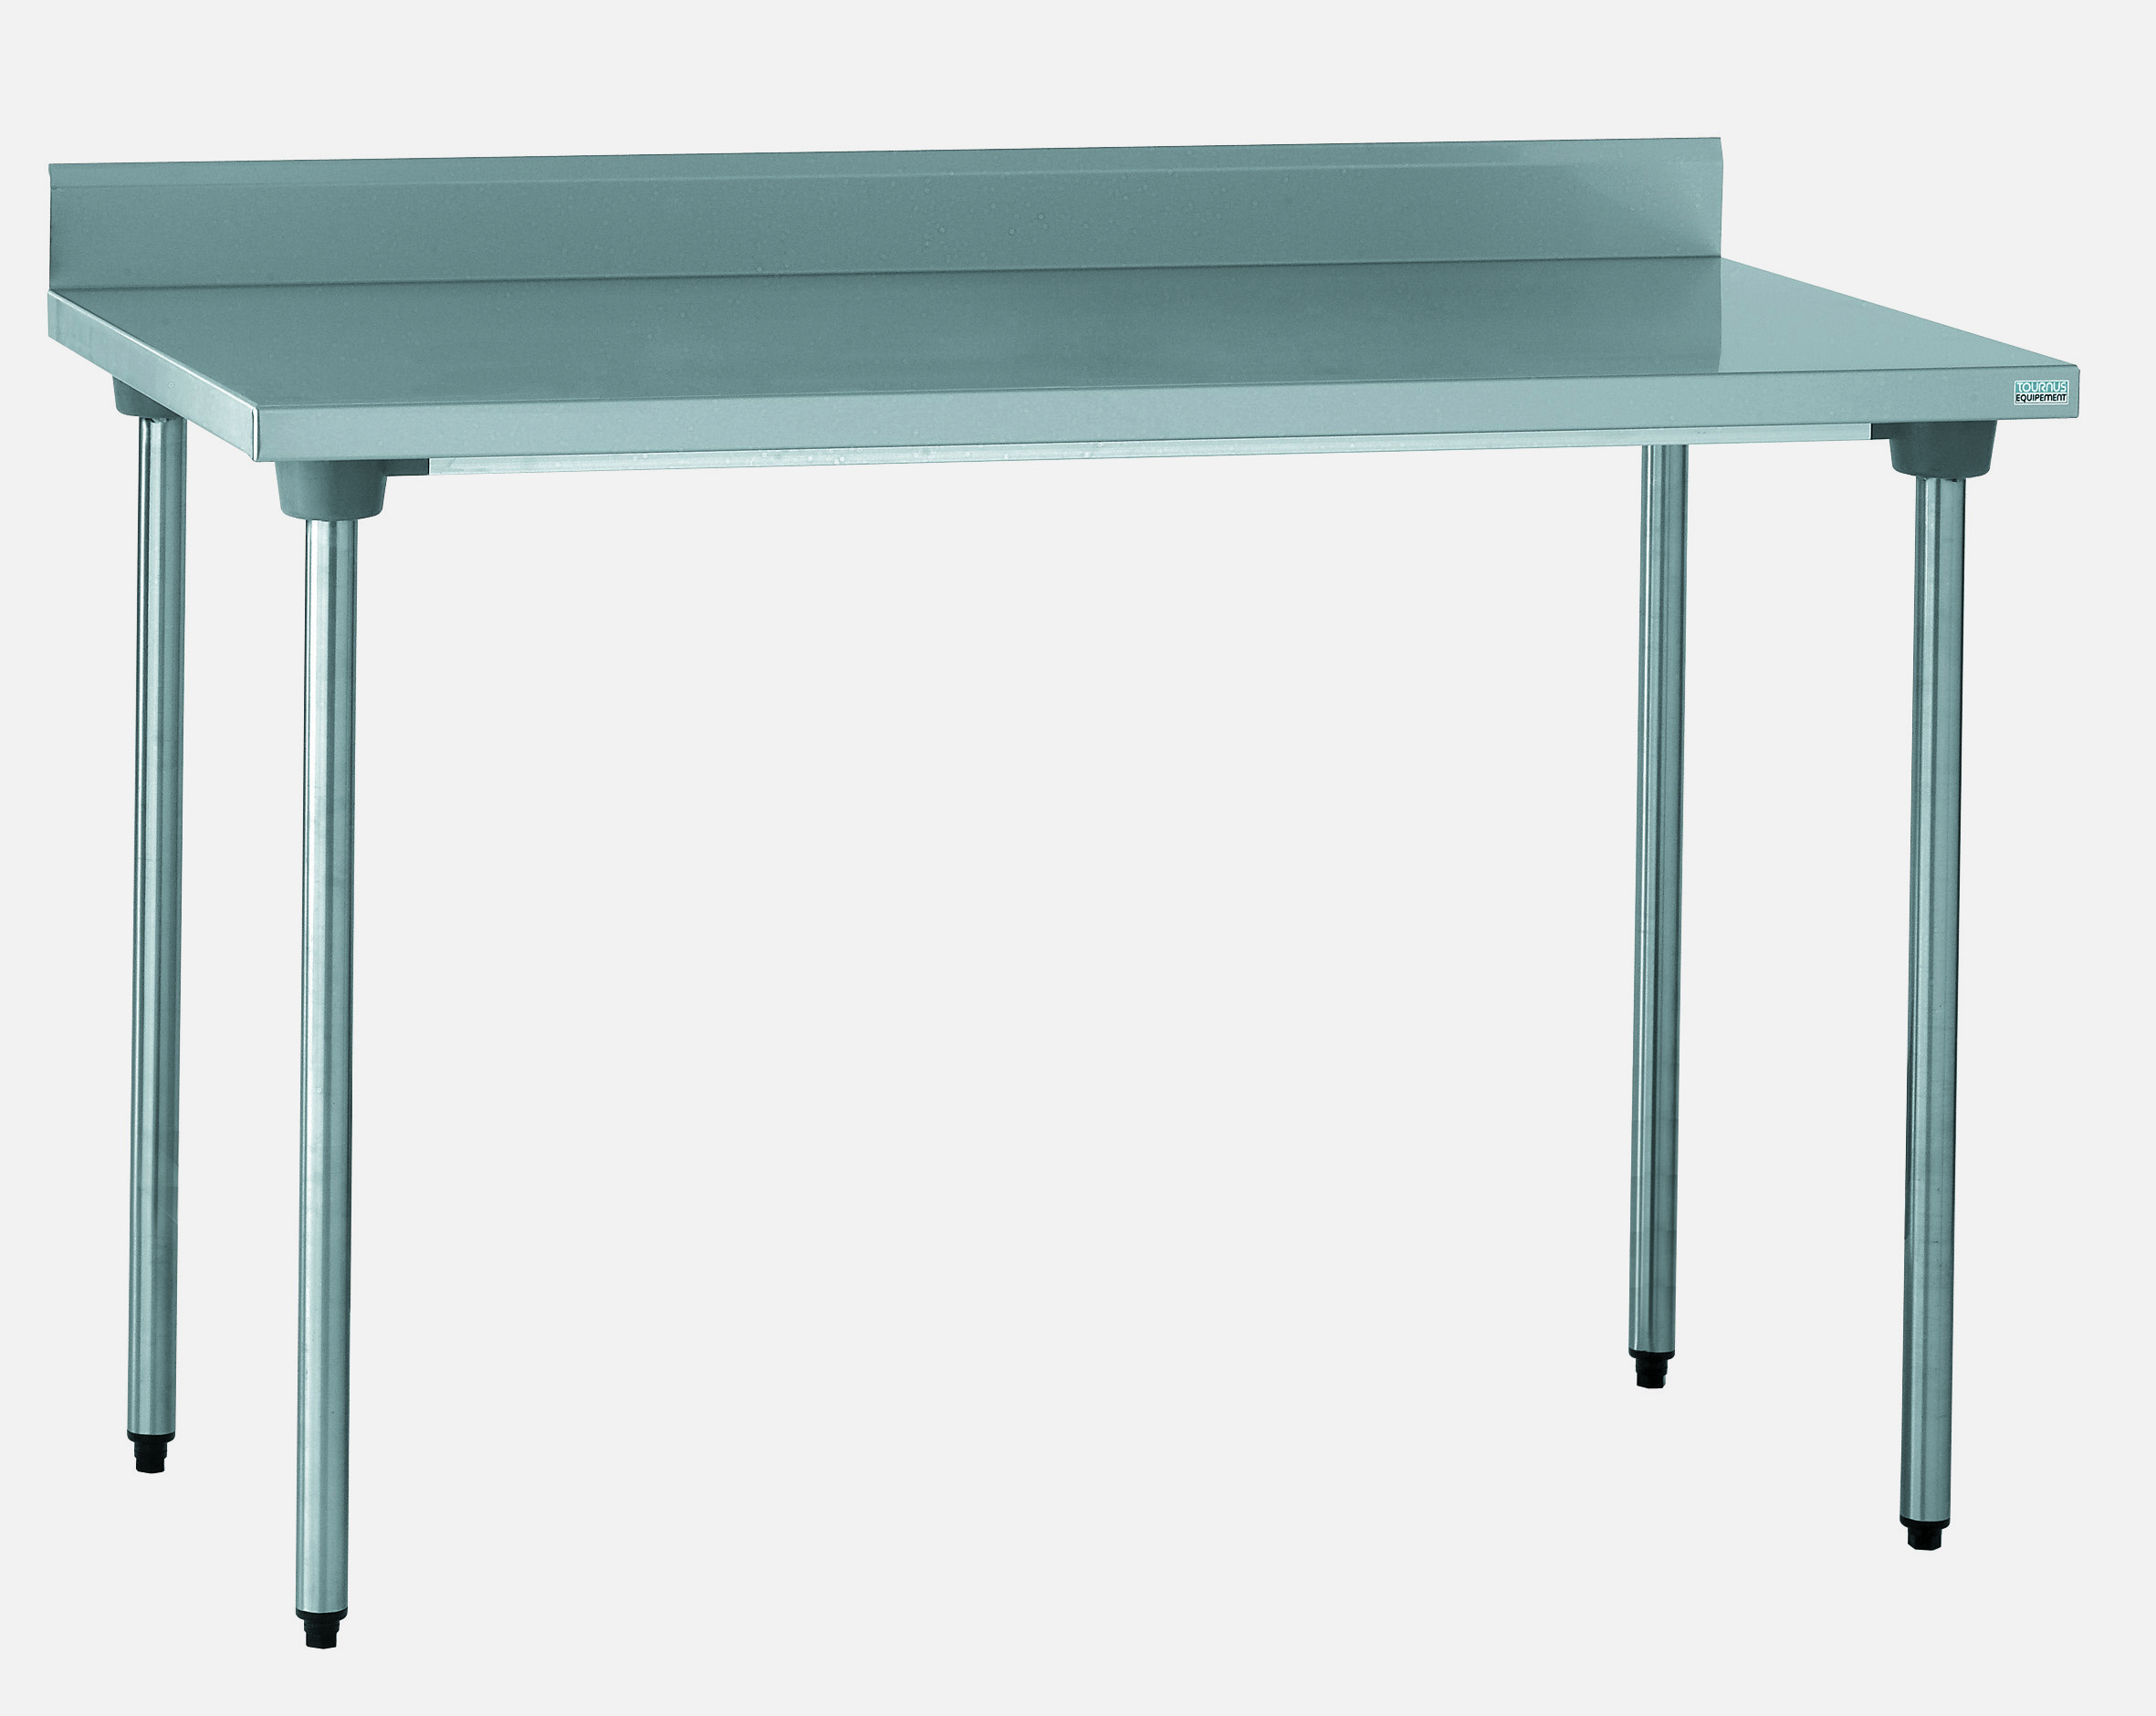 TABLE CHR ADOSSEE 700X1000